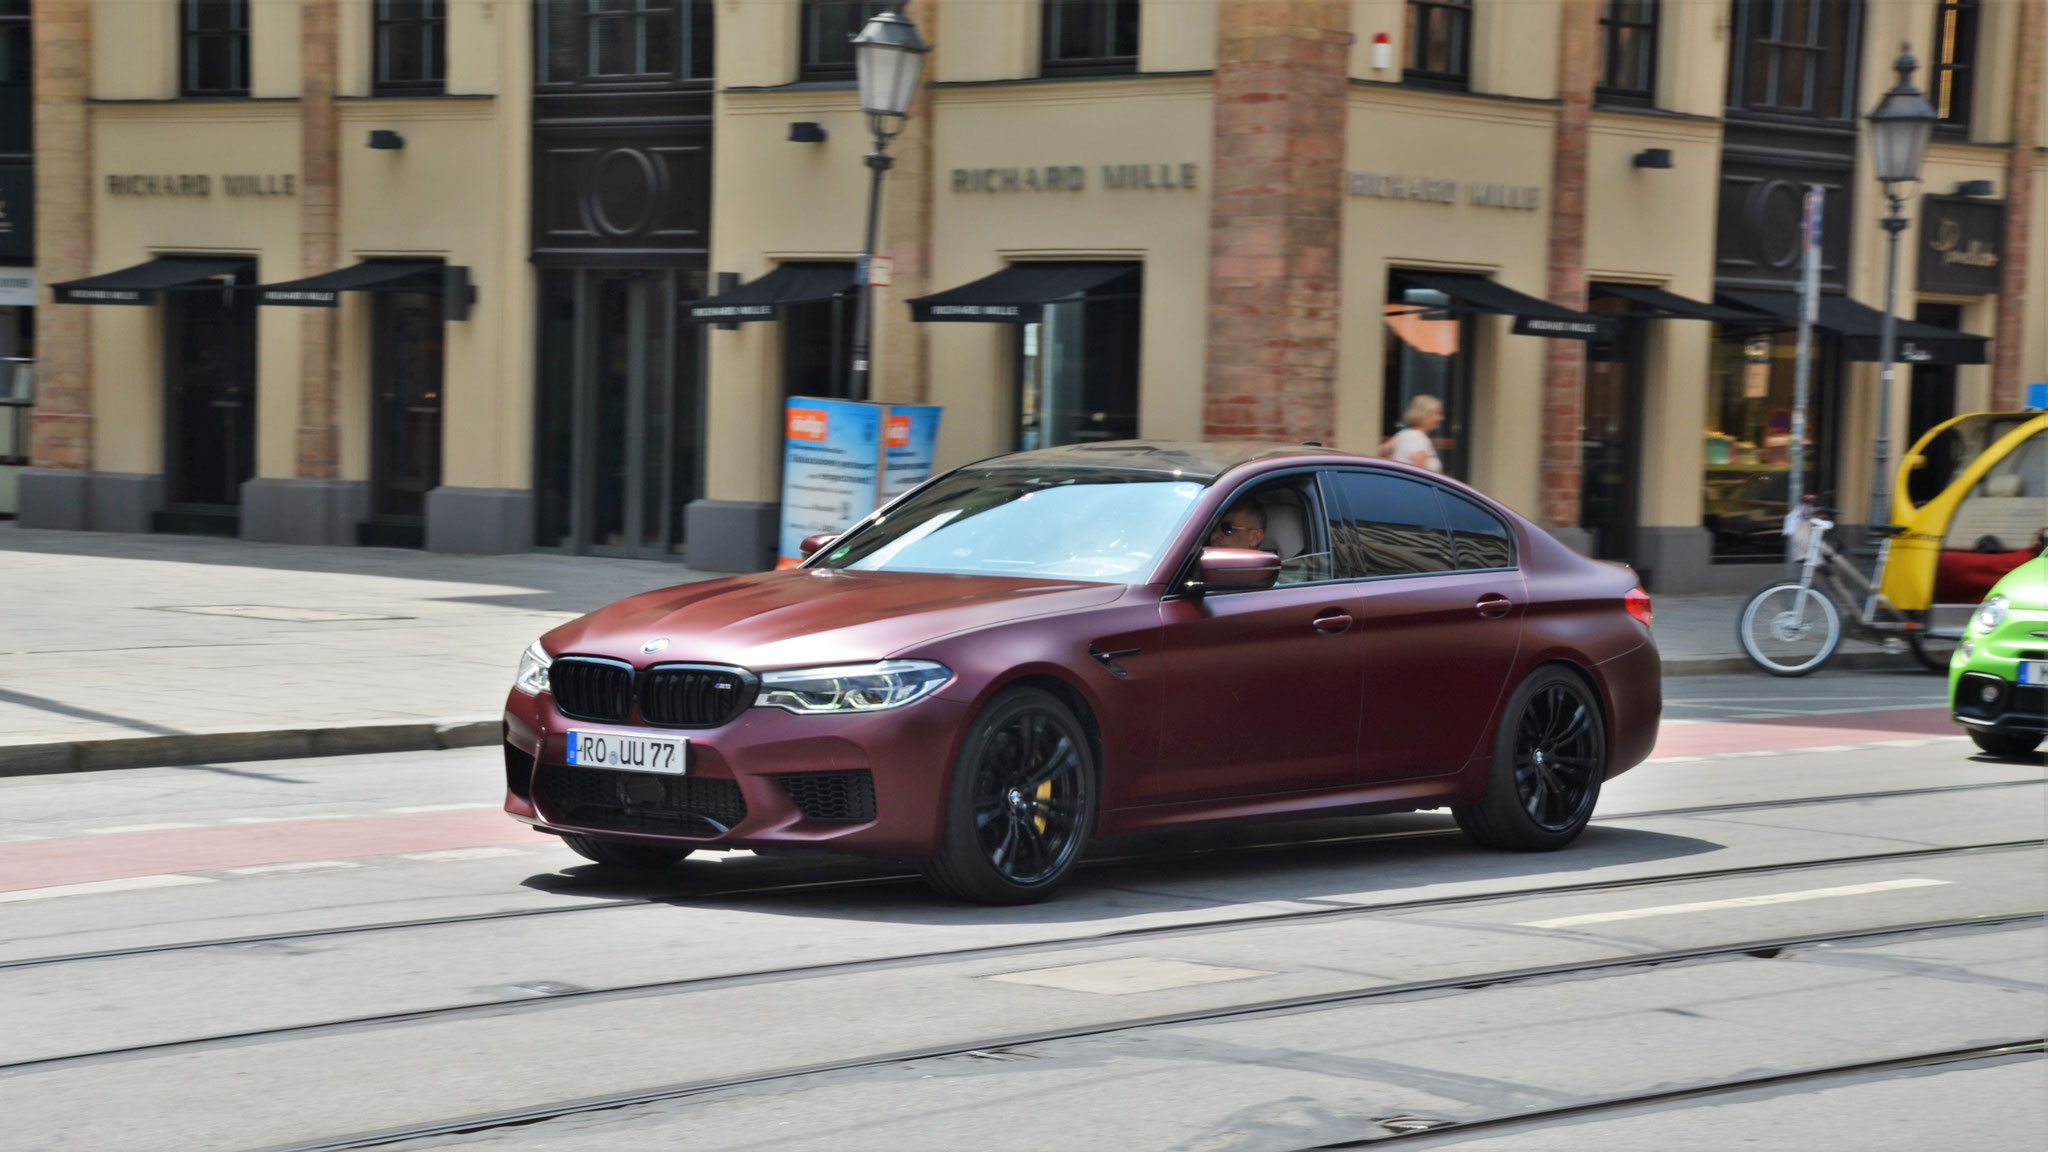 BMW M5 First Edition (1 of 400) - RO-UU-77